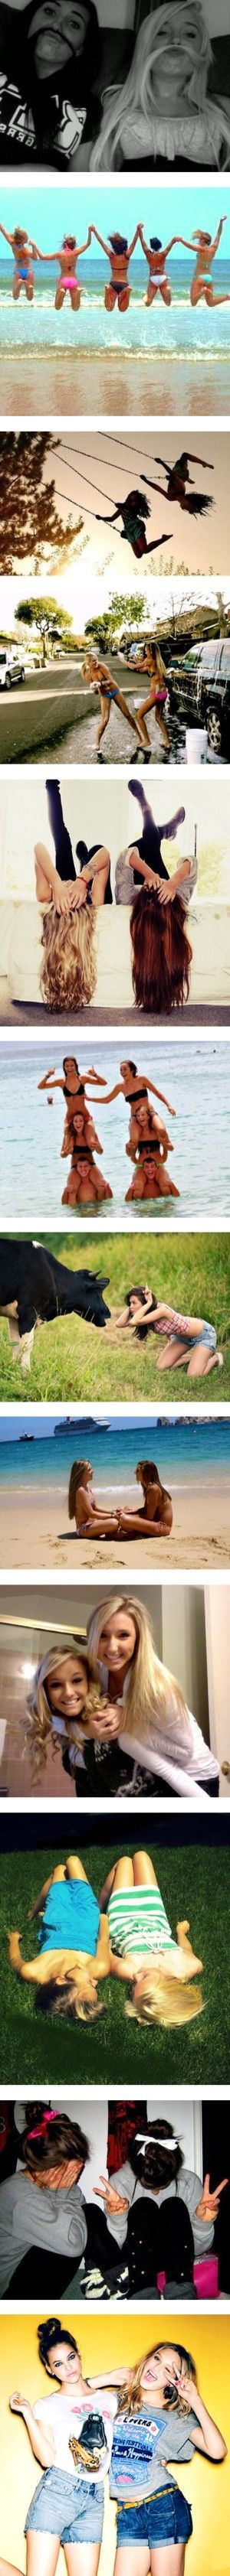 Cute bff poses.........except the cow one. Wtf is that? Who put it in this post? Are we to assume your bff is a cow? Or that you don`t have any friends? This makes no sense and no one is seeing it. It is just weird and kinda creepy!!